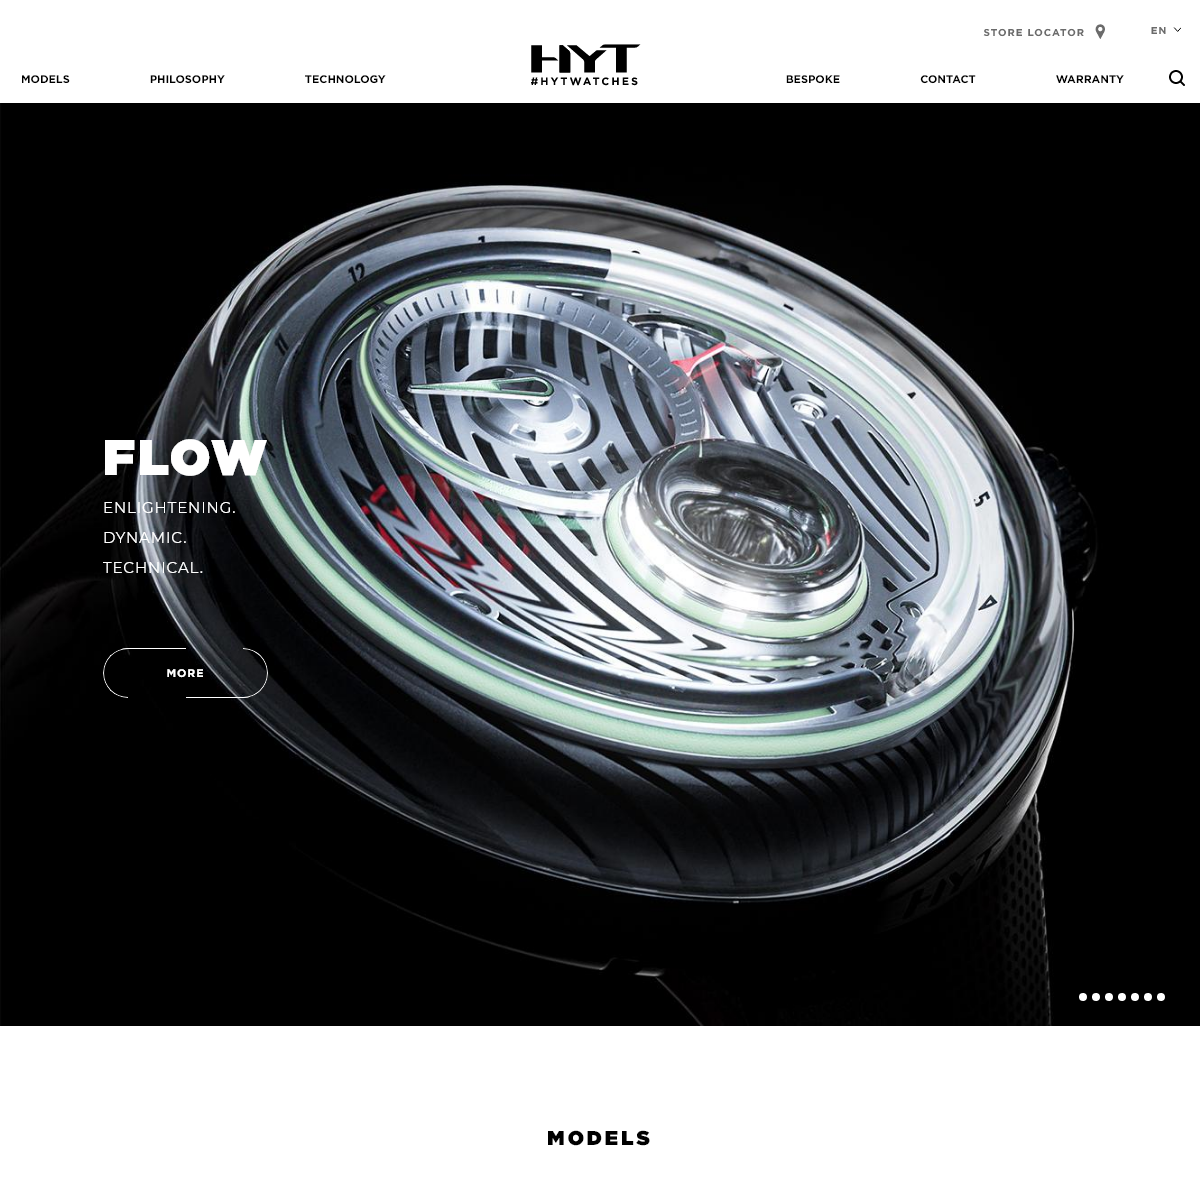 Home - HYT Watches